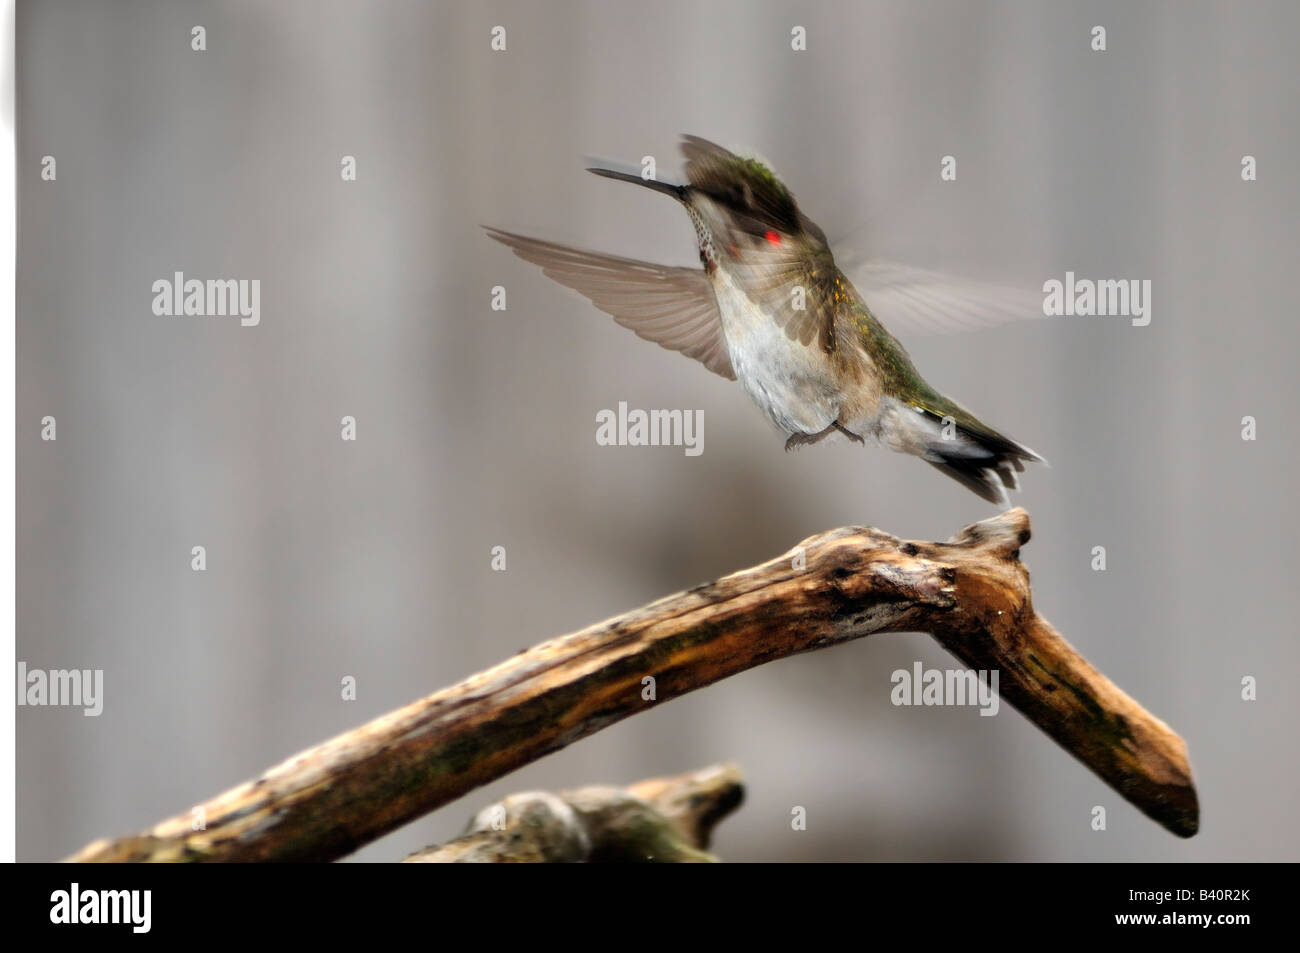 An immature male Ruby throated Hummingbird, Archilochus colubris, flies from a branch. Oklahoma, USA. Stock Photo